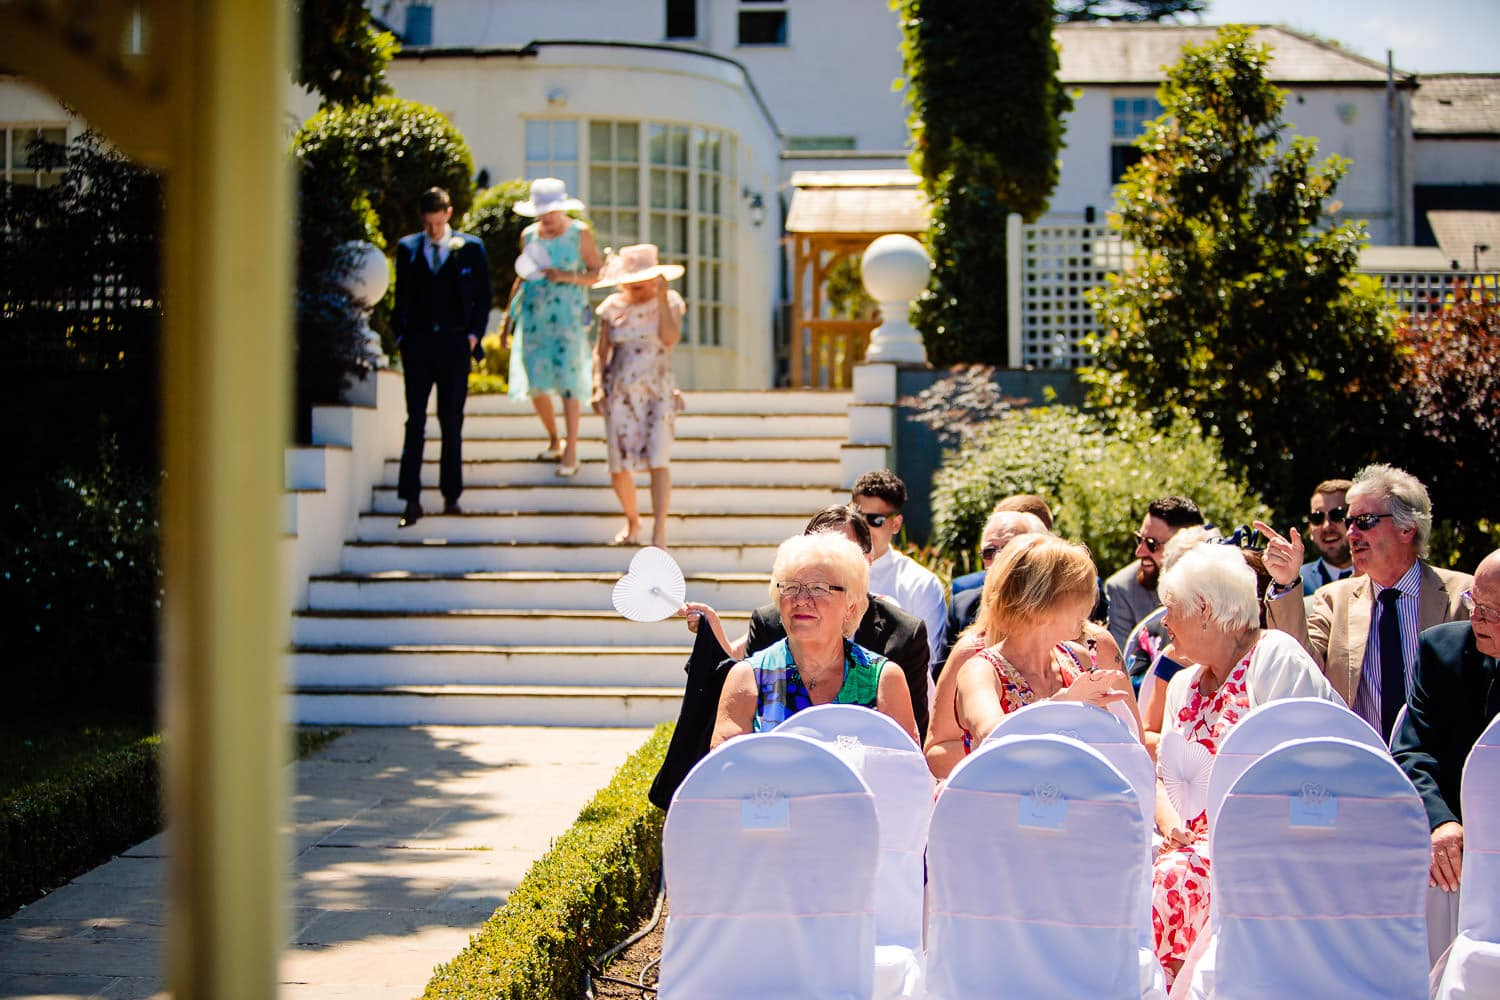 Warwick House Wedding Photography captures guests being seated for outdoor wedding ceremony